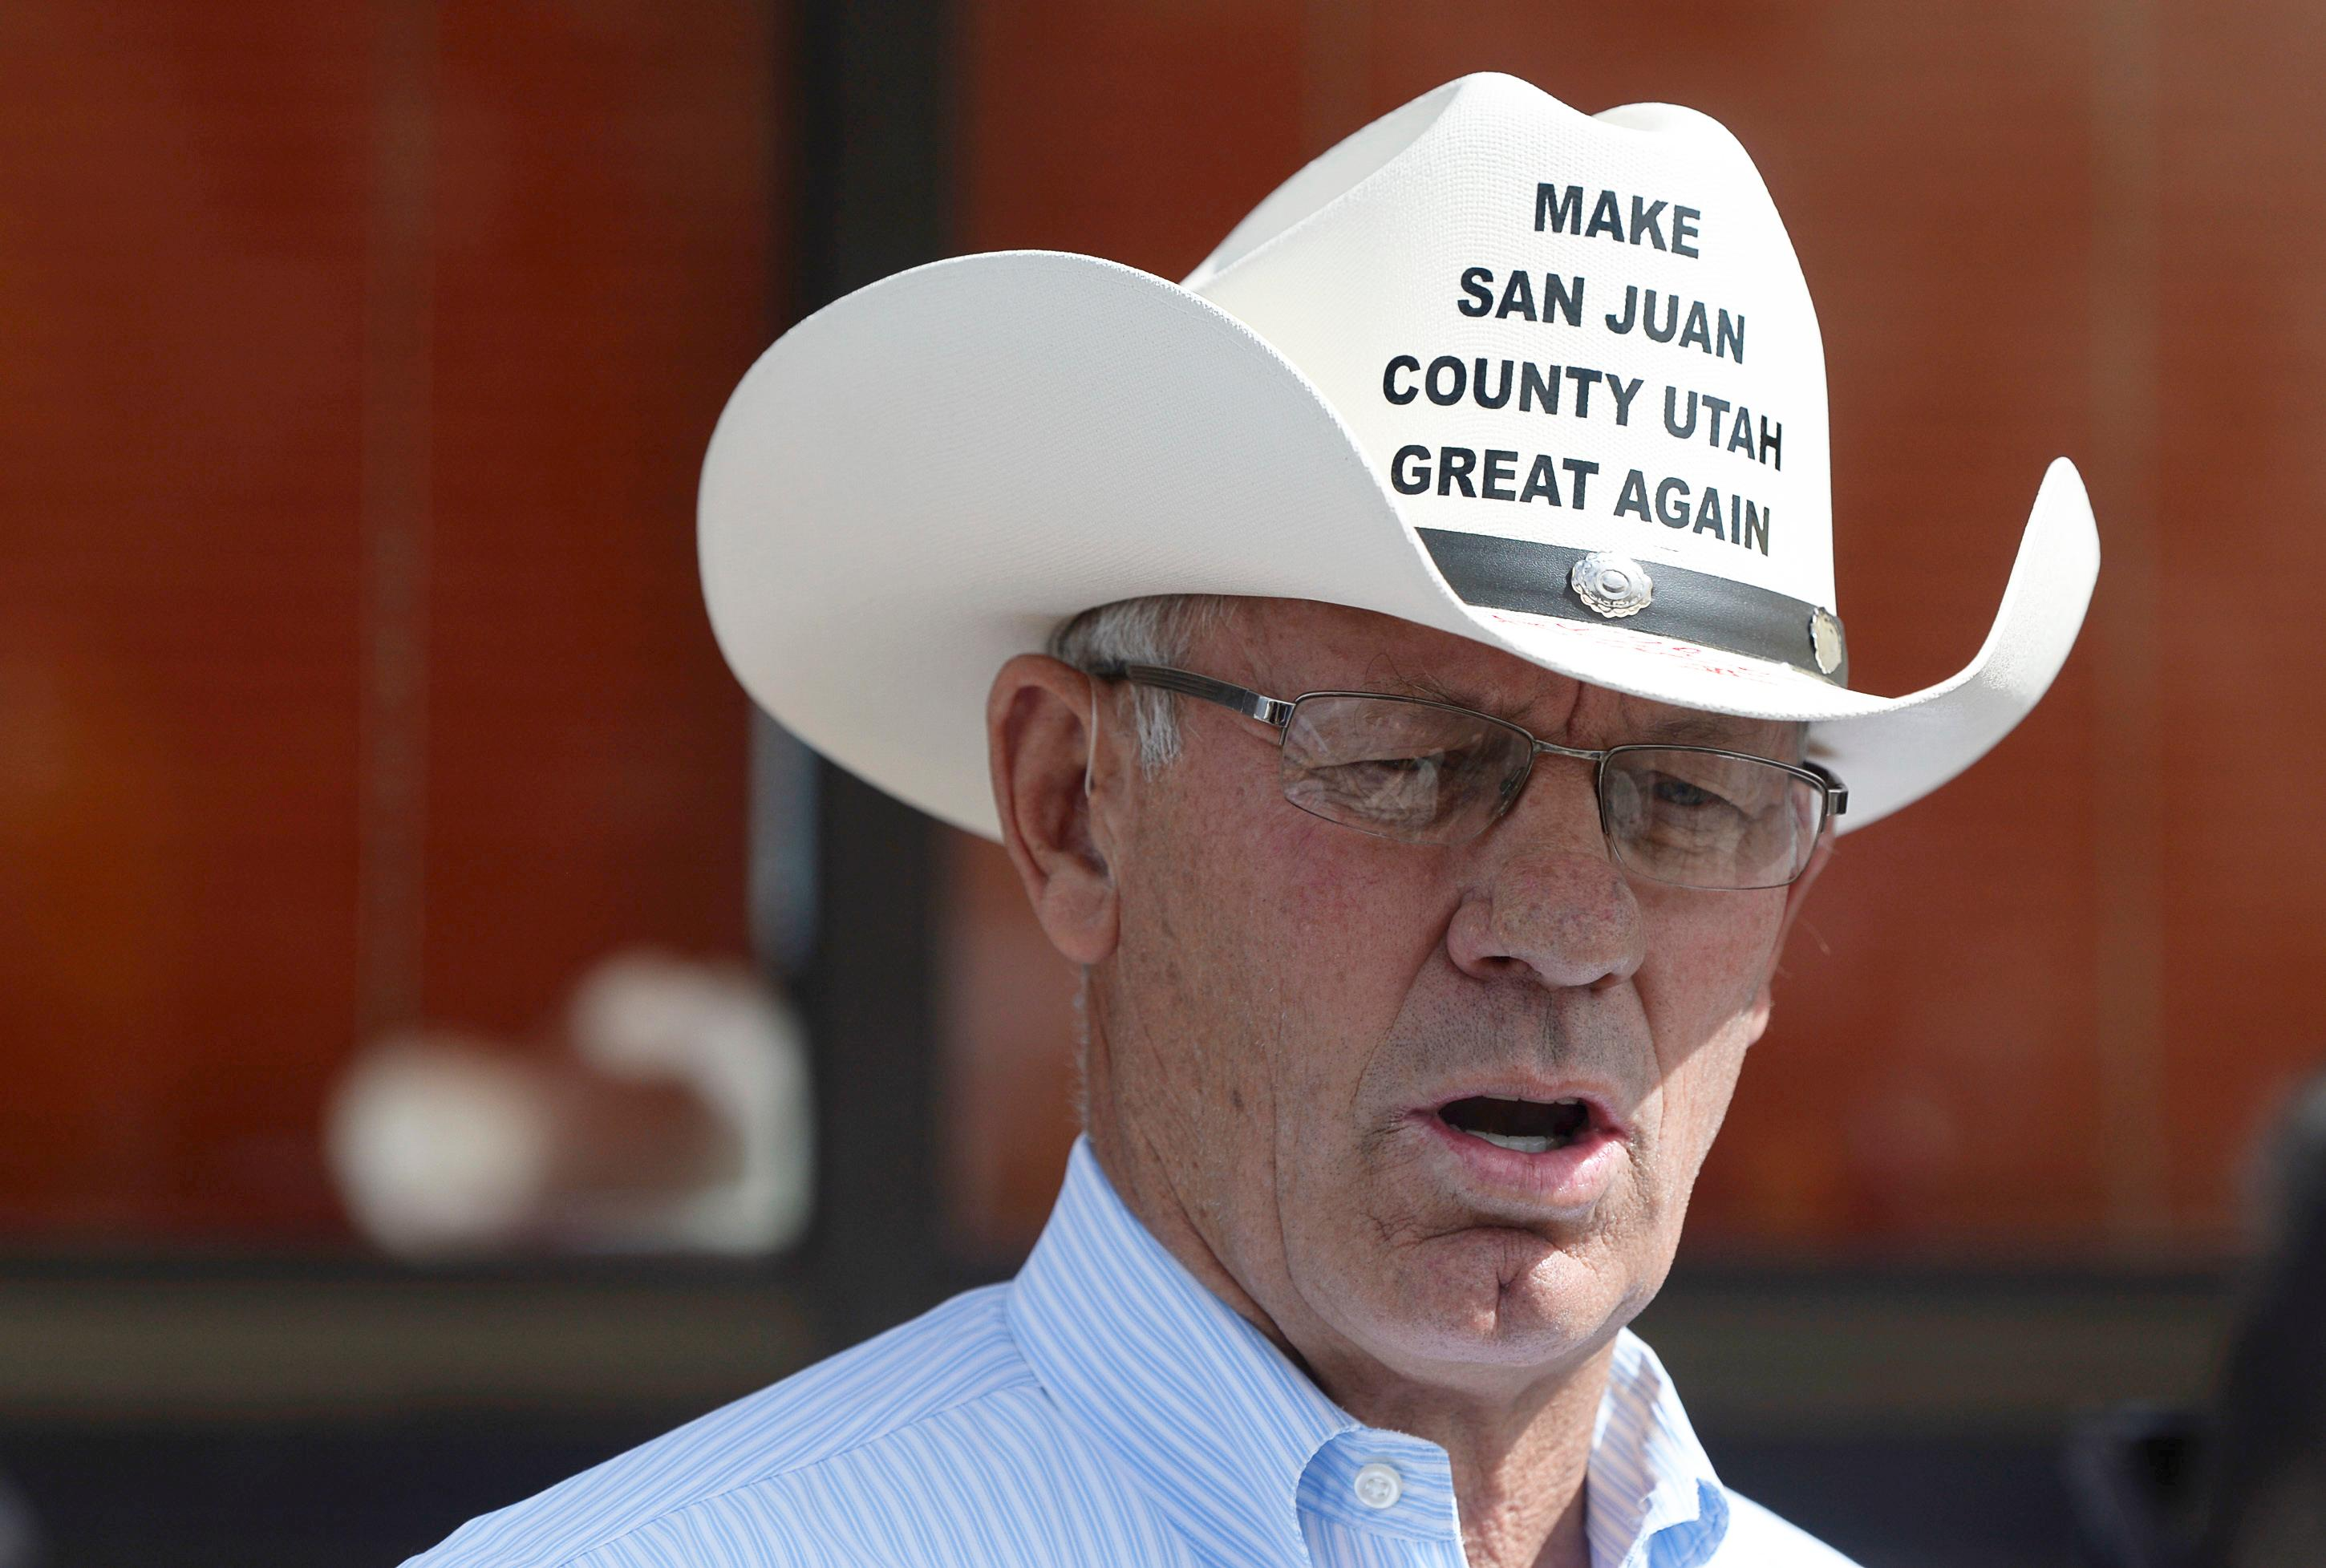 Bruce Adams, chairman of the San Juan County Commission, makes it clear where he stands on the recently designated Bears Ears National Monument designation. Adams arrived at the Blanding airport on Monday, May 8, 2017, to greet Interior Secretary Ryan Zinke as he arrived for an aerial tour of the recently designated Bears Ears National Monument in southeastern Utah. Utah Republicans in Congress are advocating for Trump to jettison Utah's national monument designation.  (Francisco Kjolseth/The Salt Lake Tribune via AP)